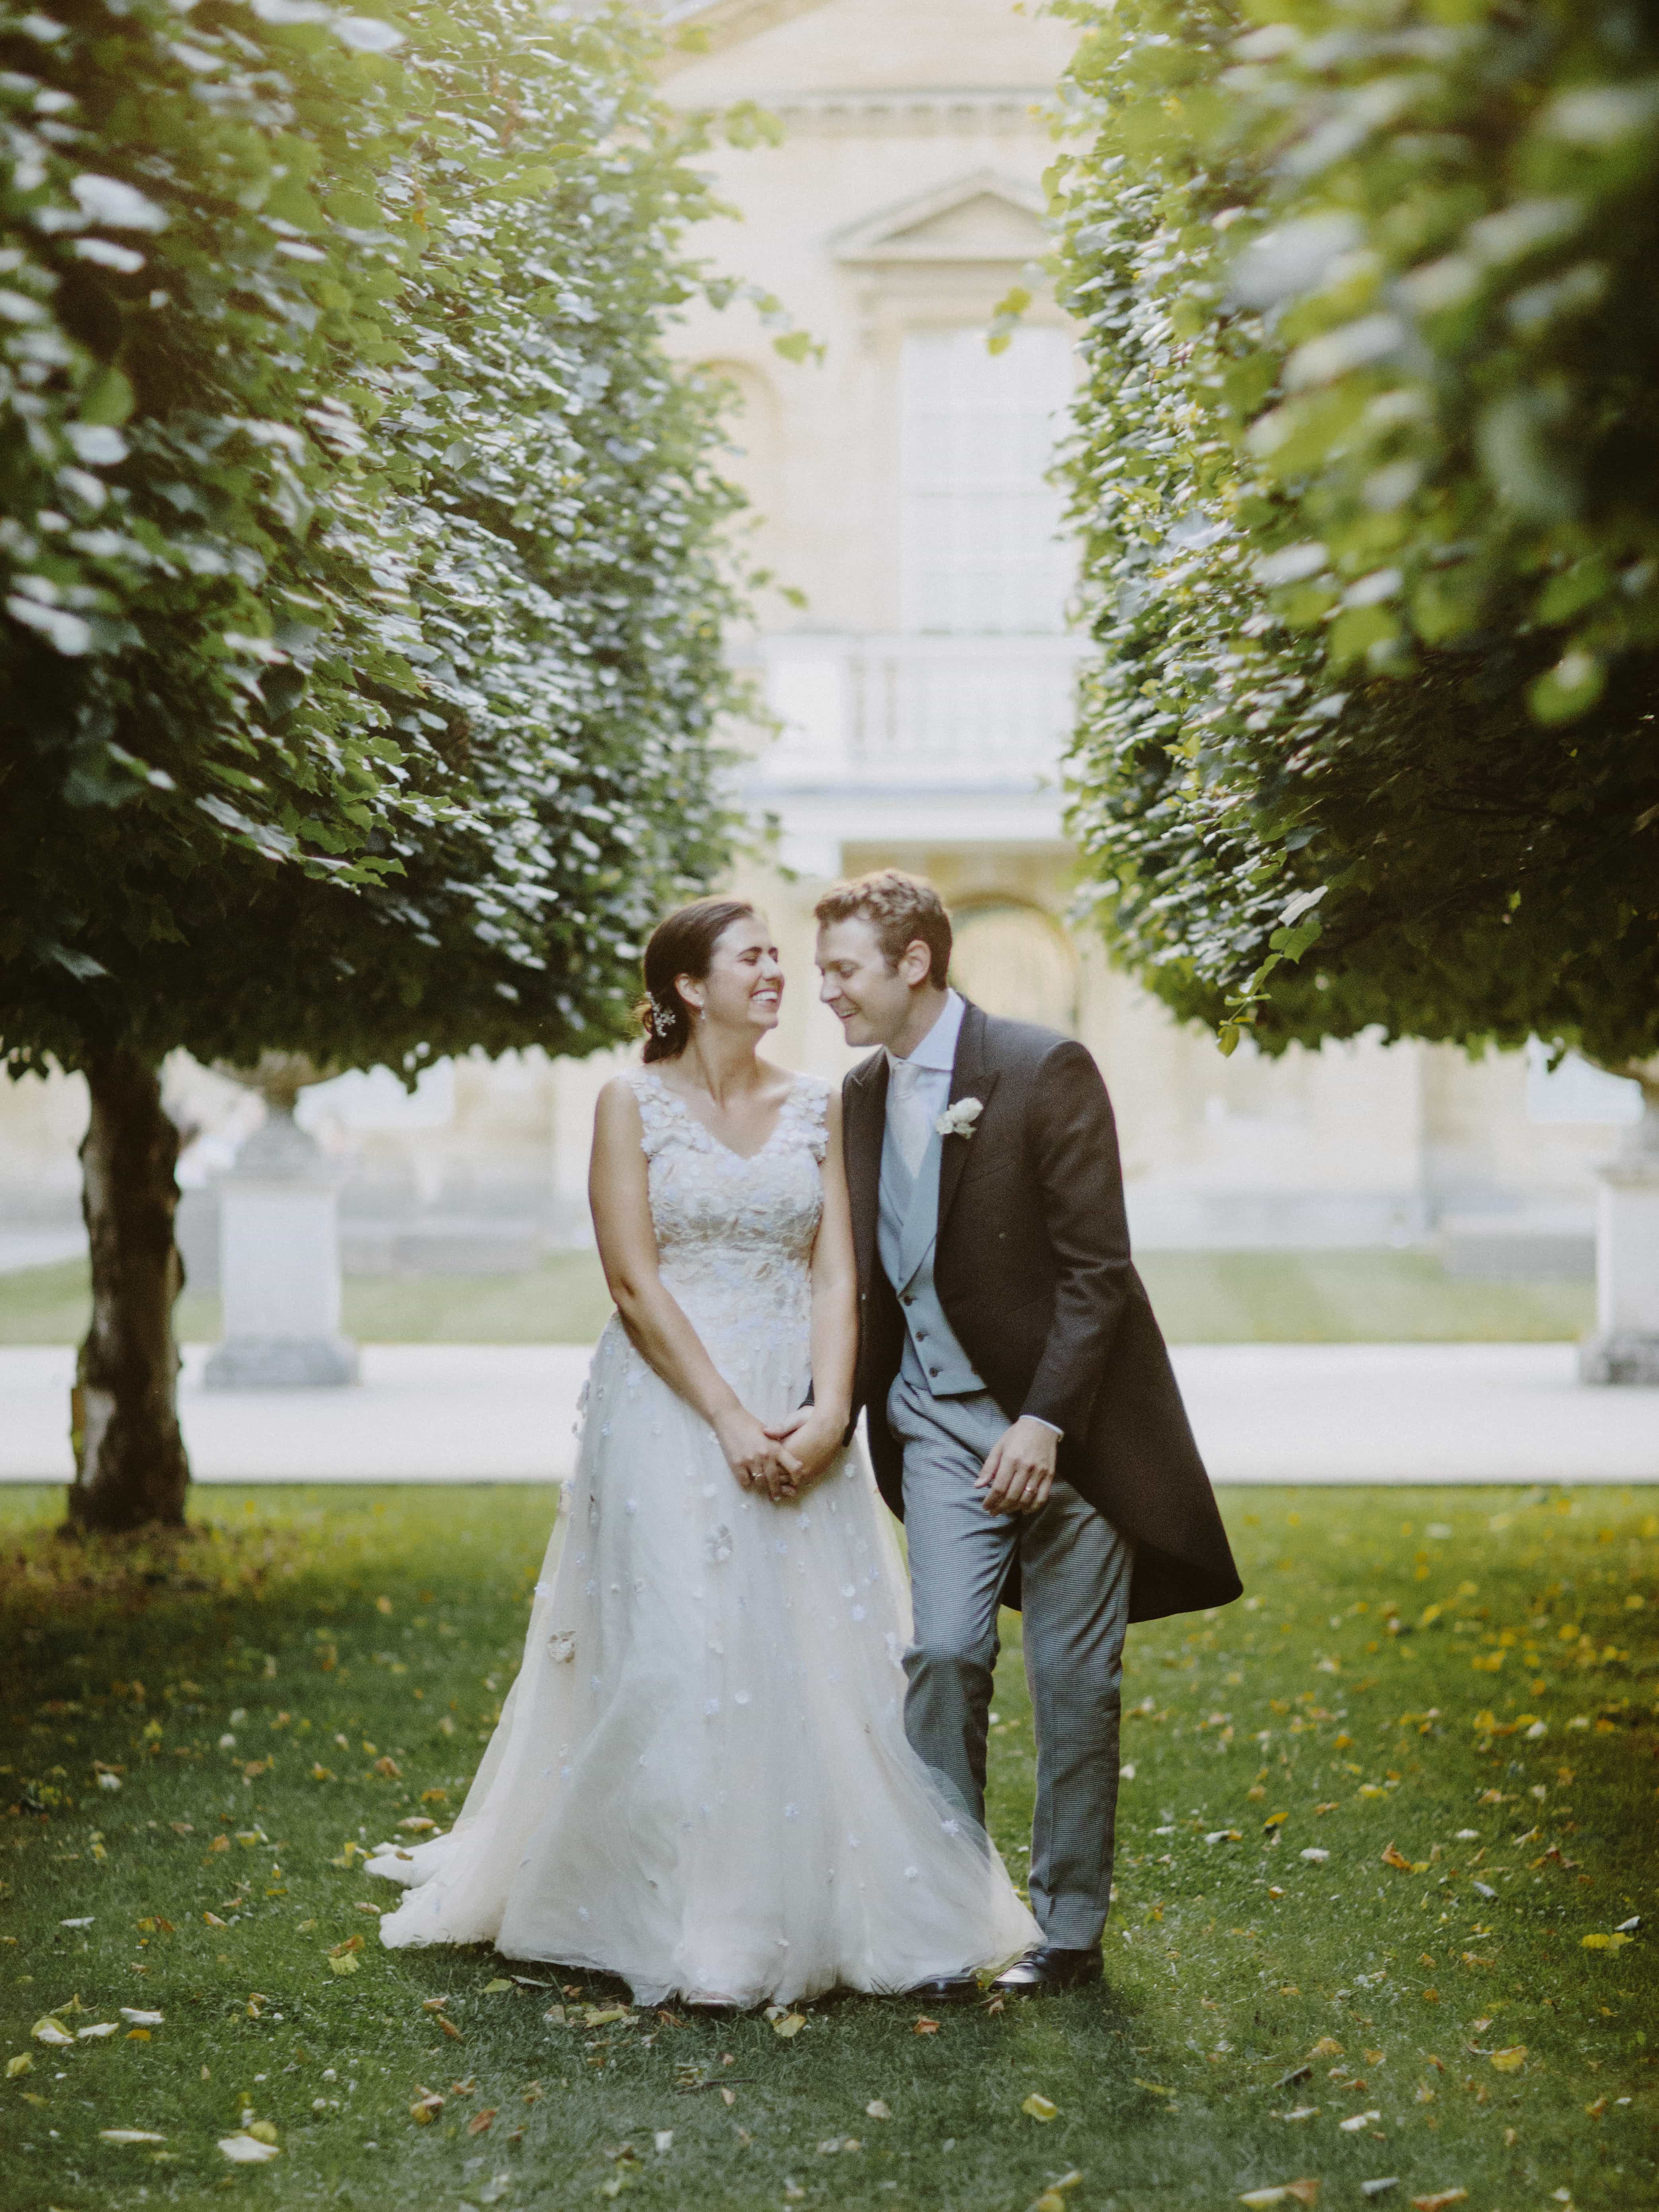 Madison and Reid's London Wedding at Chiswick House and Gardens